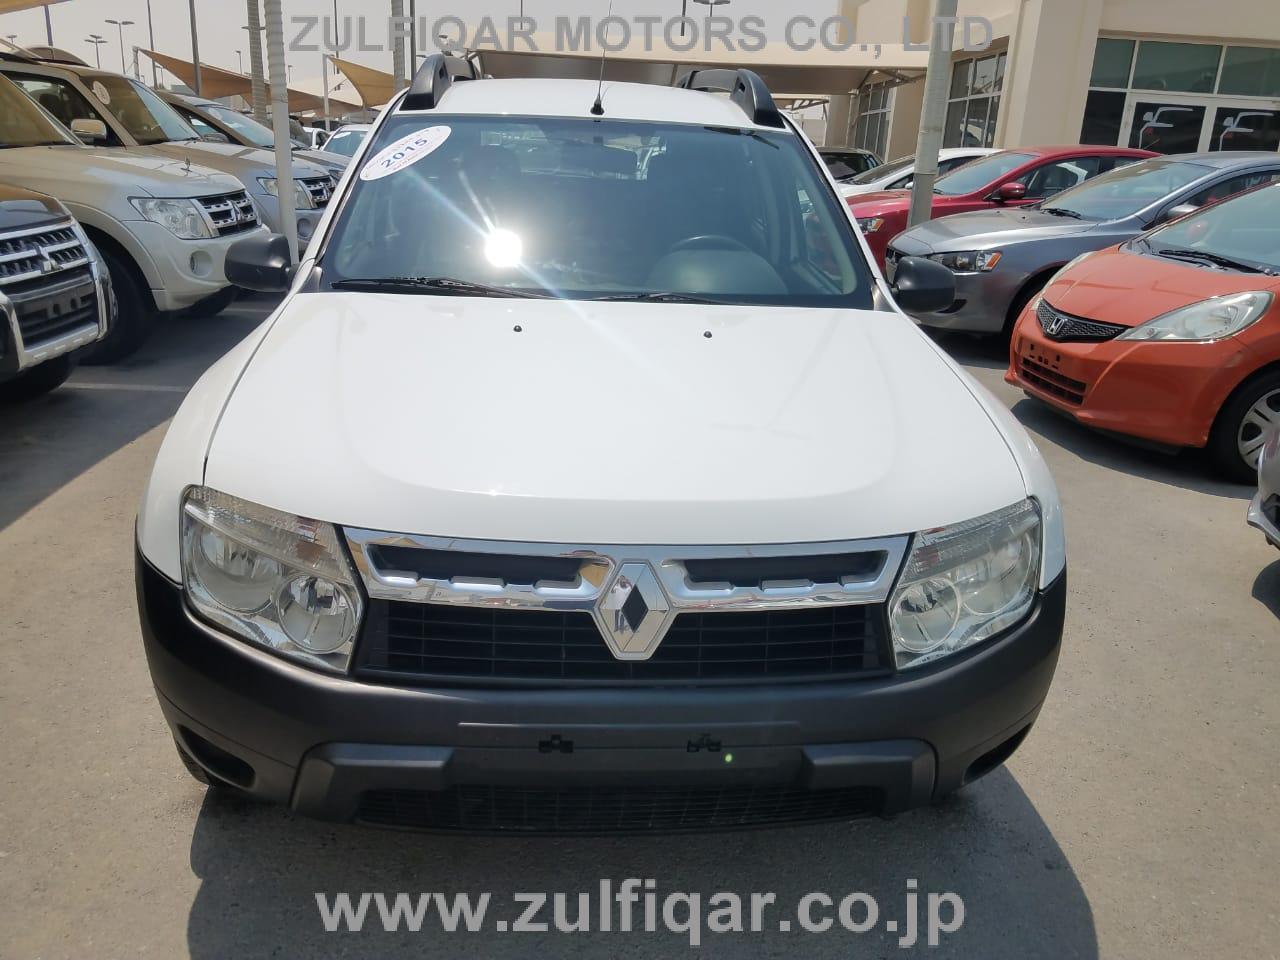 RENAULT DUSTER 2015 Image 1